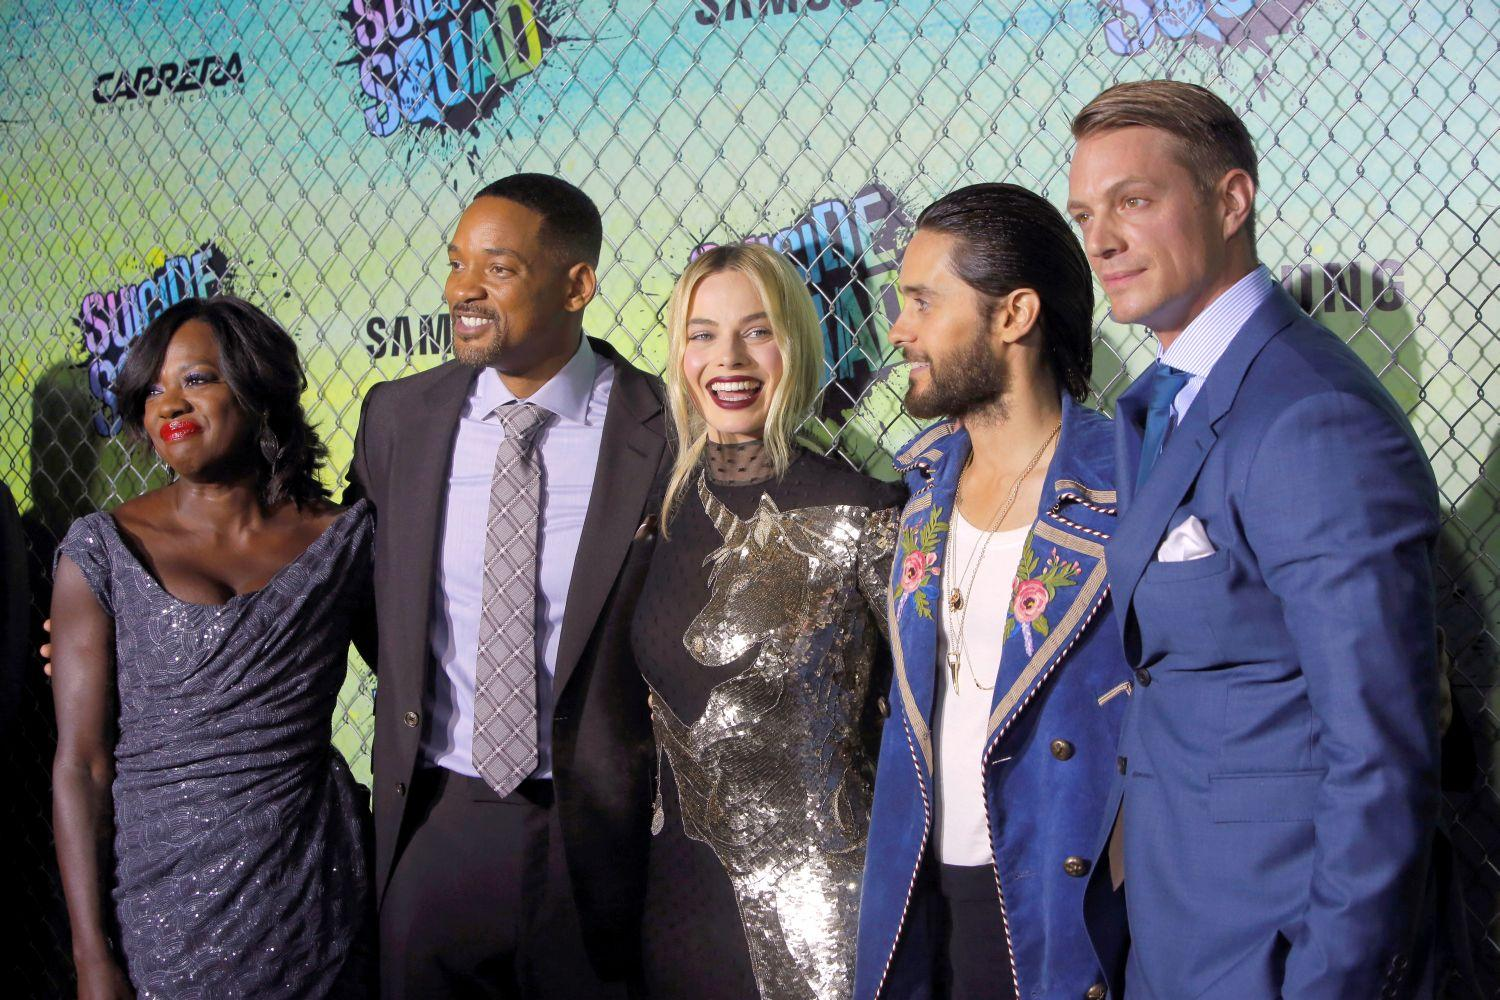 Viola Davis, Will Smith, Margot Robbie, Jared Leto és Joel Kinnaman a film premierjén